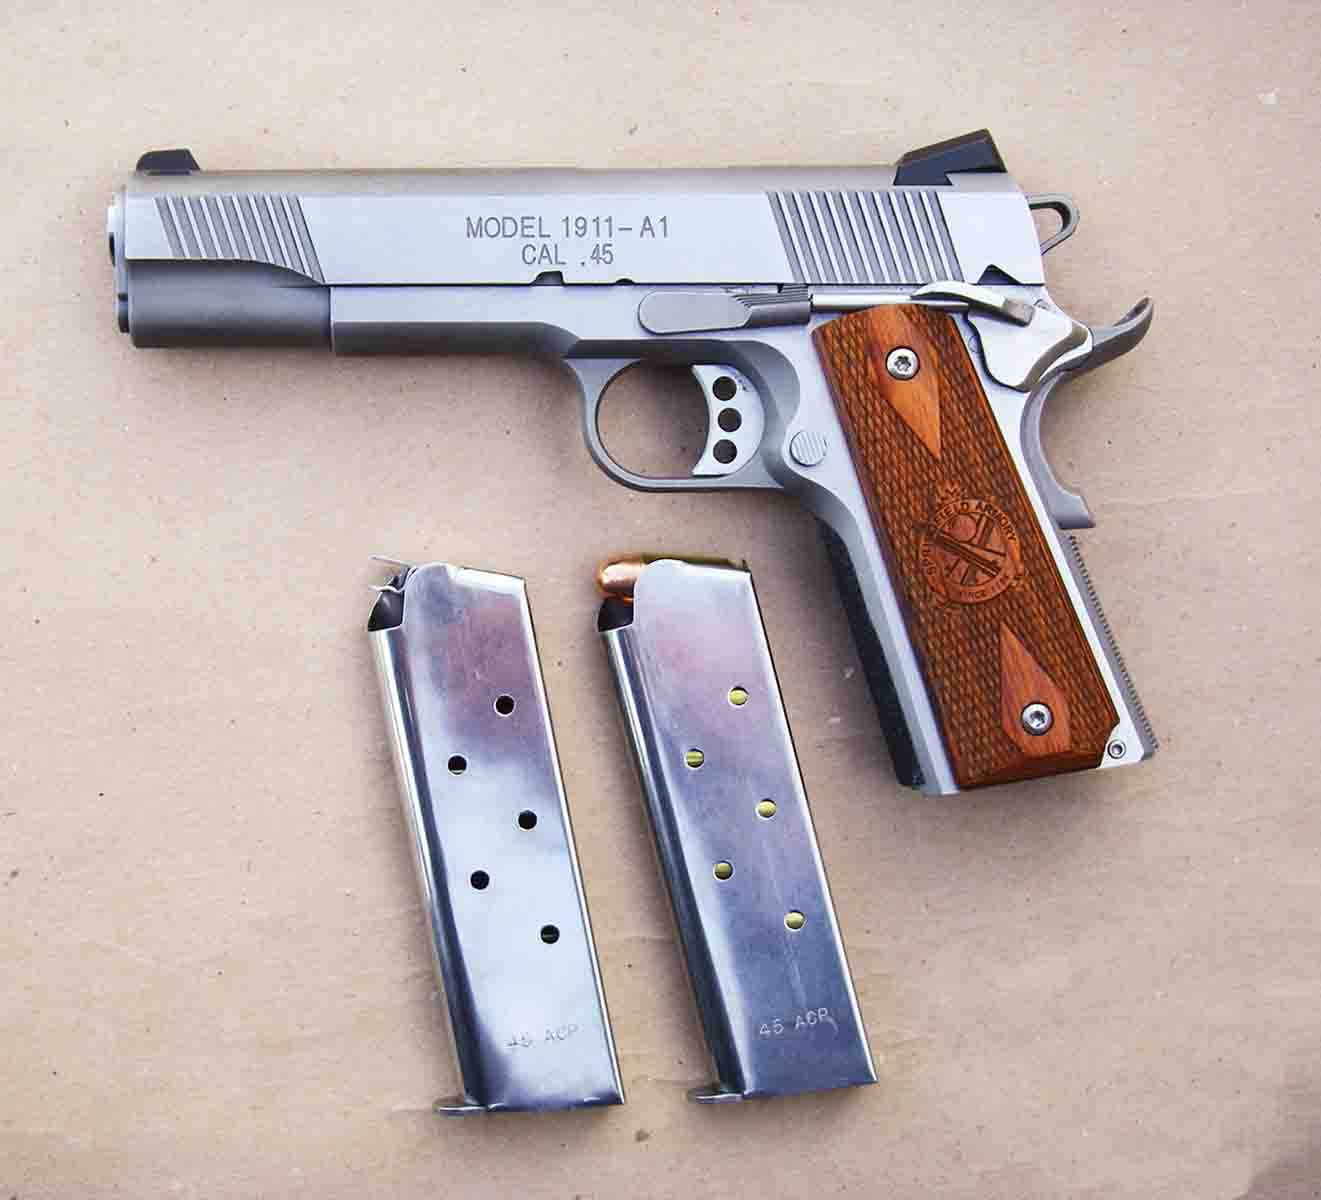 The 1911-A1 Loaded Stainless .45 ACP offers many desirable features, including two magazines.